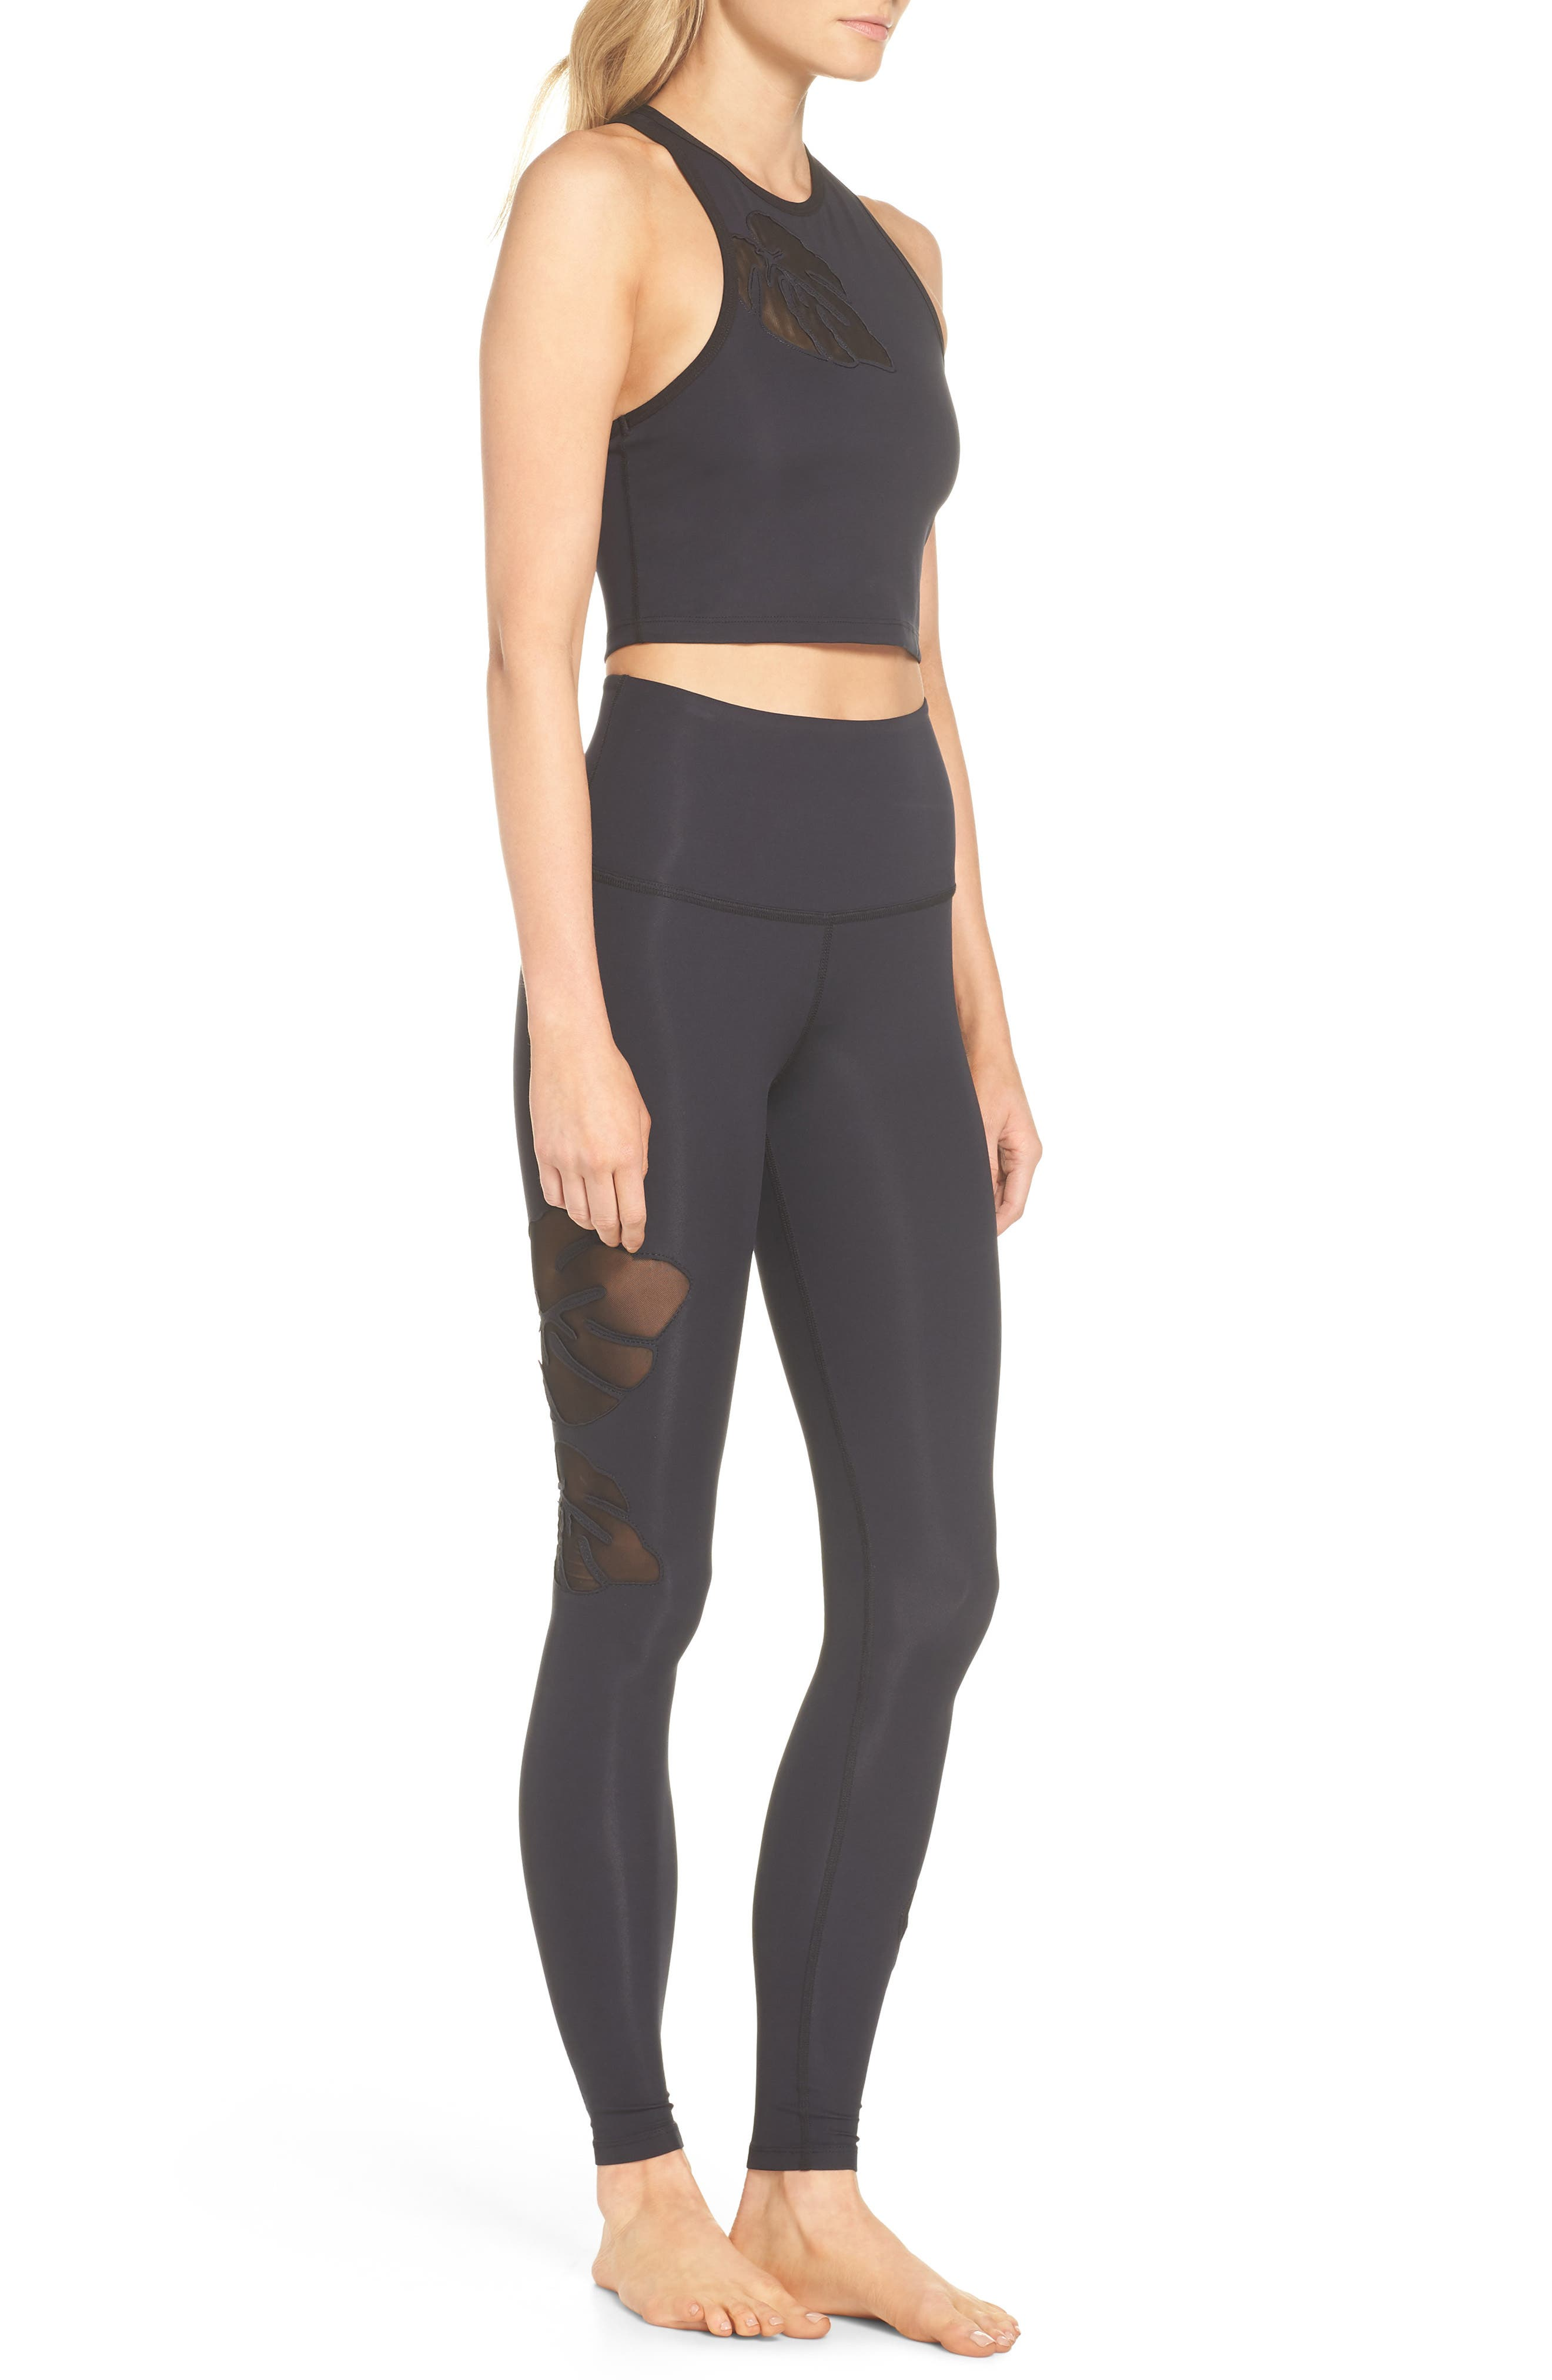 Take Leaf High Waist Leggings,                             Alternate thumbnail 9, color,                             002